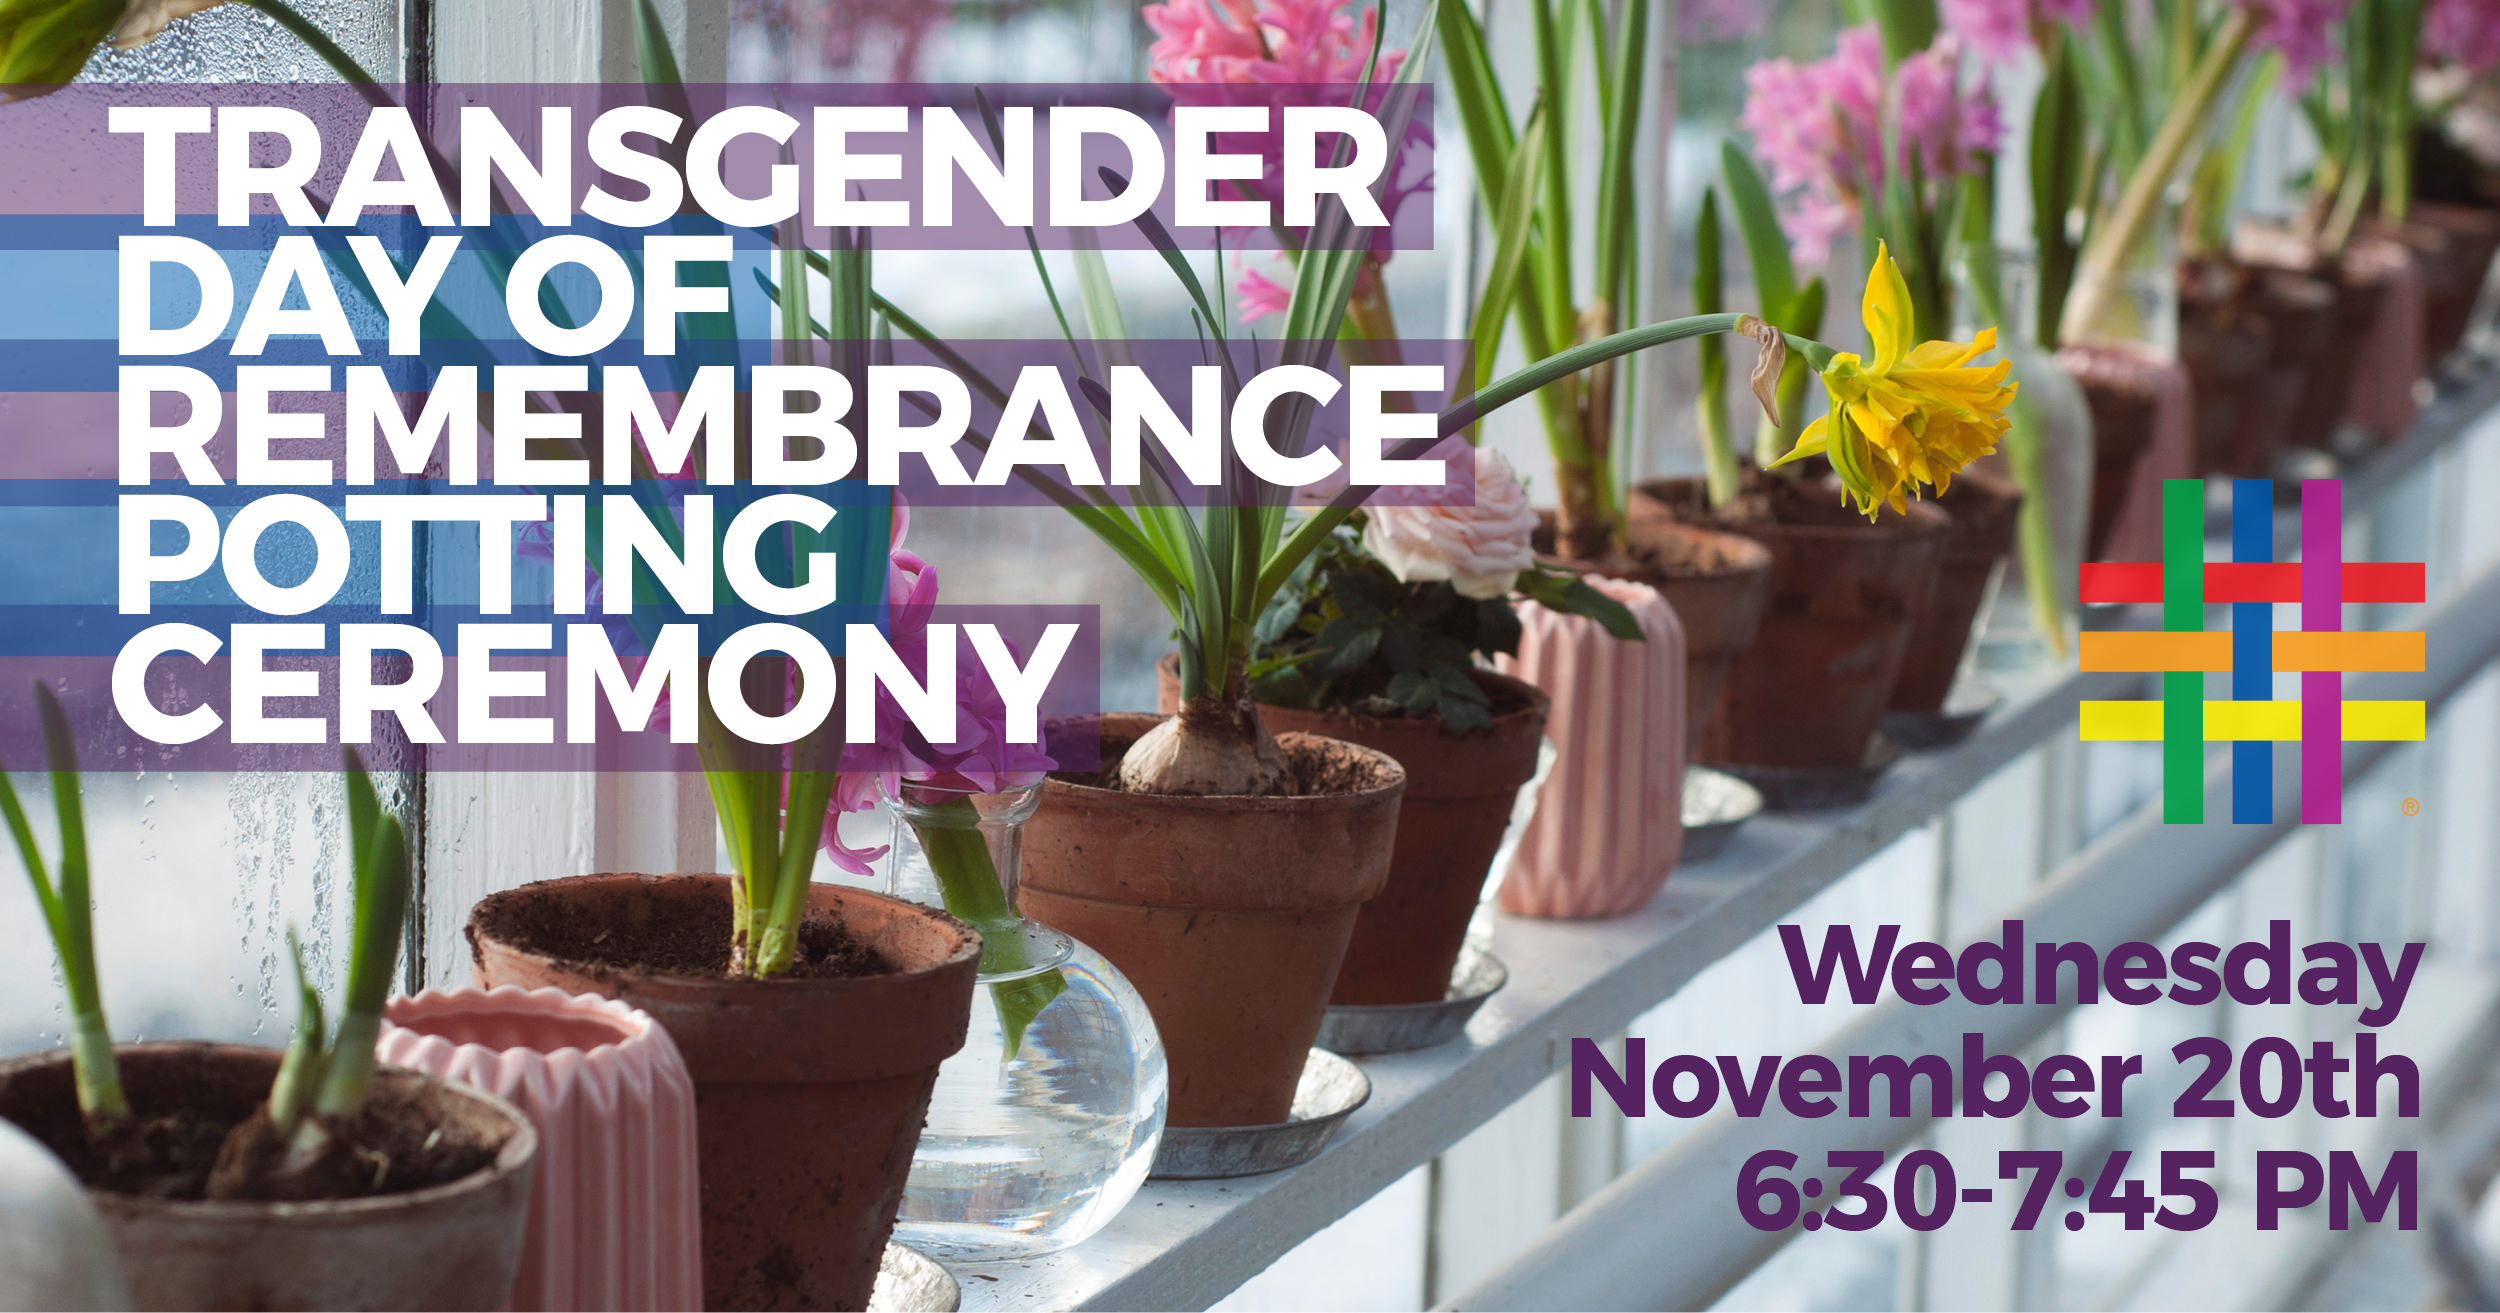 Transgender Day of Remembrance Potting Ceremony at Brooklyn Community Pride Center